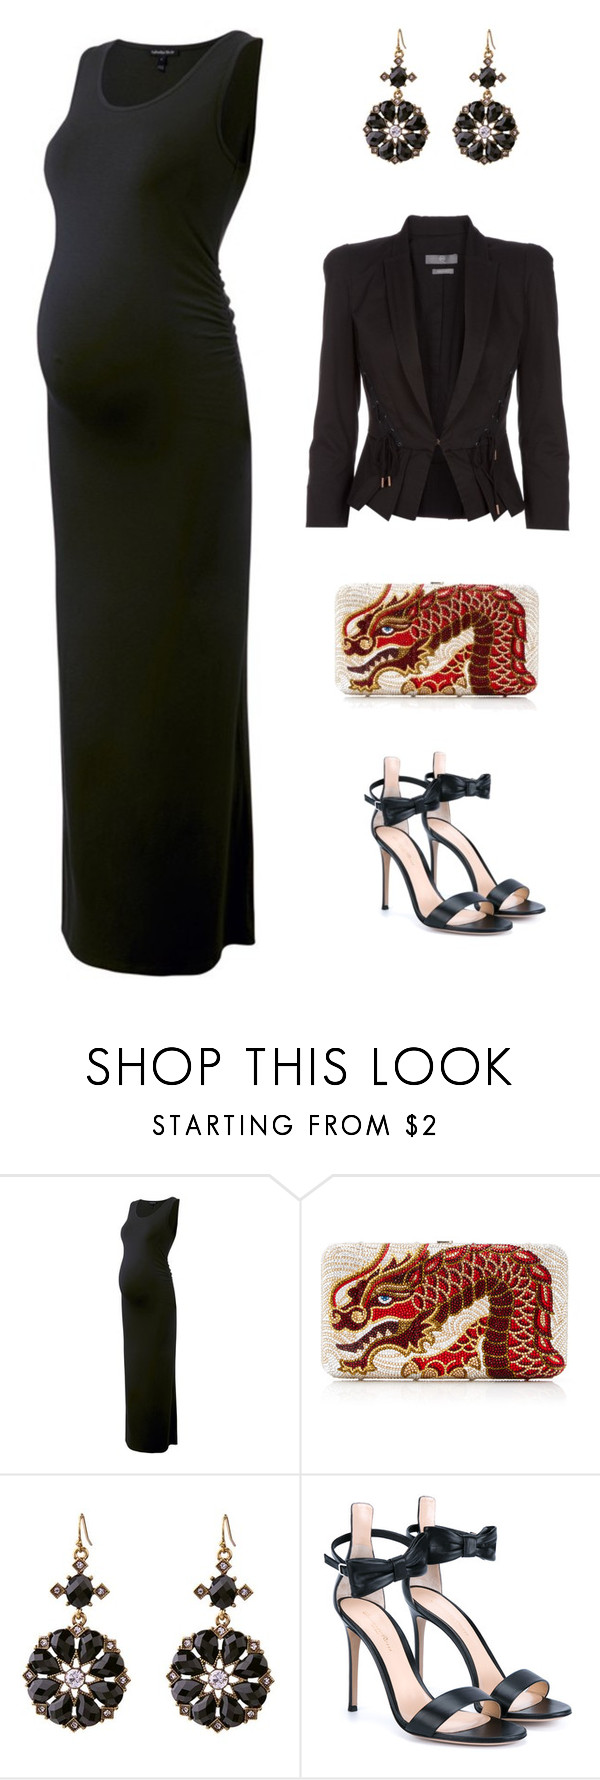 """""""Formal evening"""" by edith-a-giles ❤ liked on Polyvore featuring Isabella Oliver, Gianvito Rossi and McQ by Alexander McQueen"""